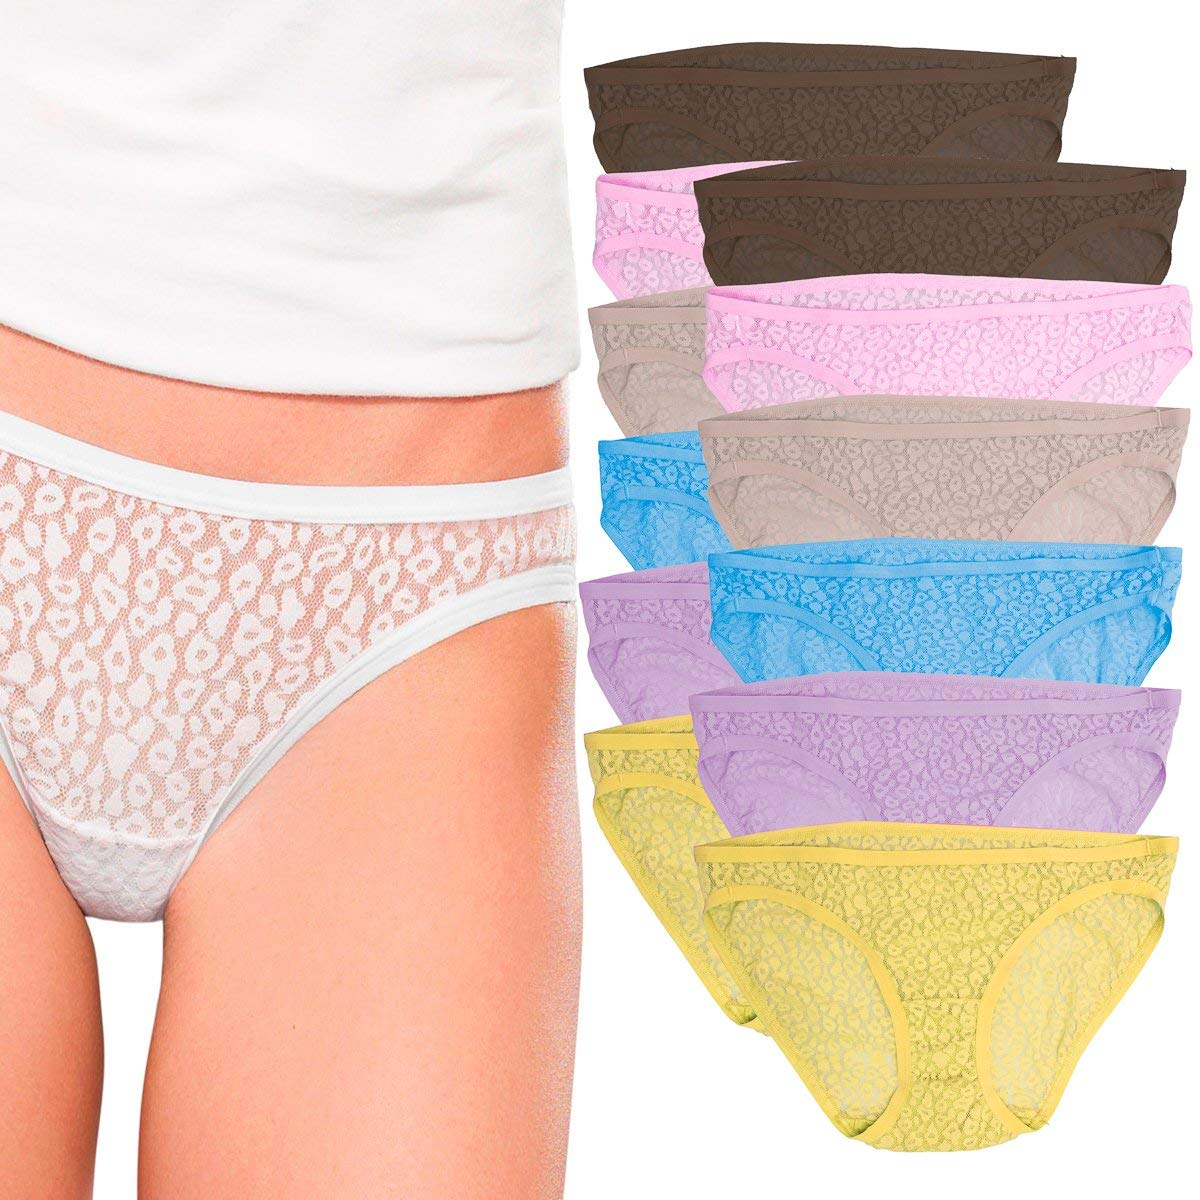 d50bb945f29a Get Quotations · Fruit of the Loom (12 Pack Lace Bikini Panties for Women  Underwear No Panty Line